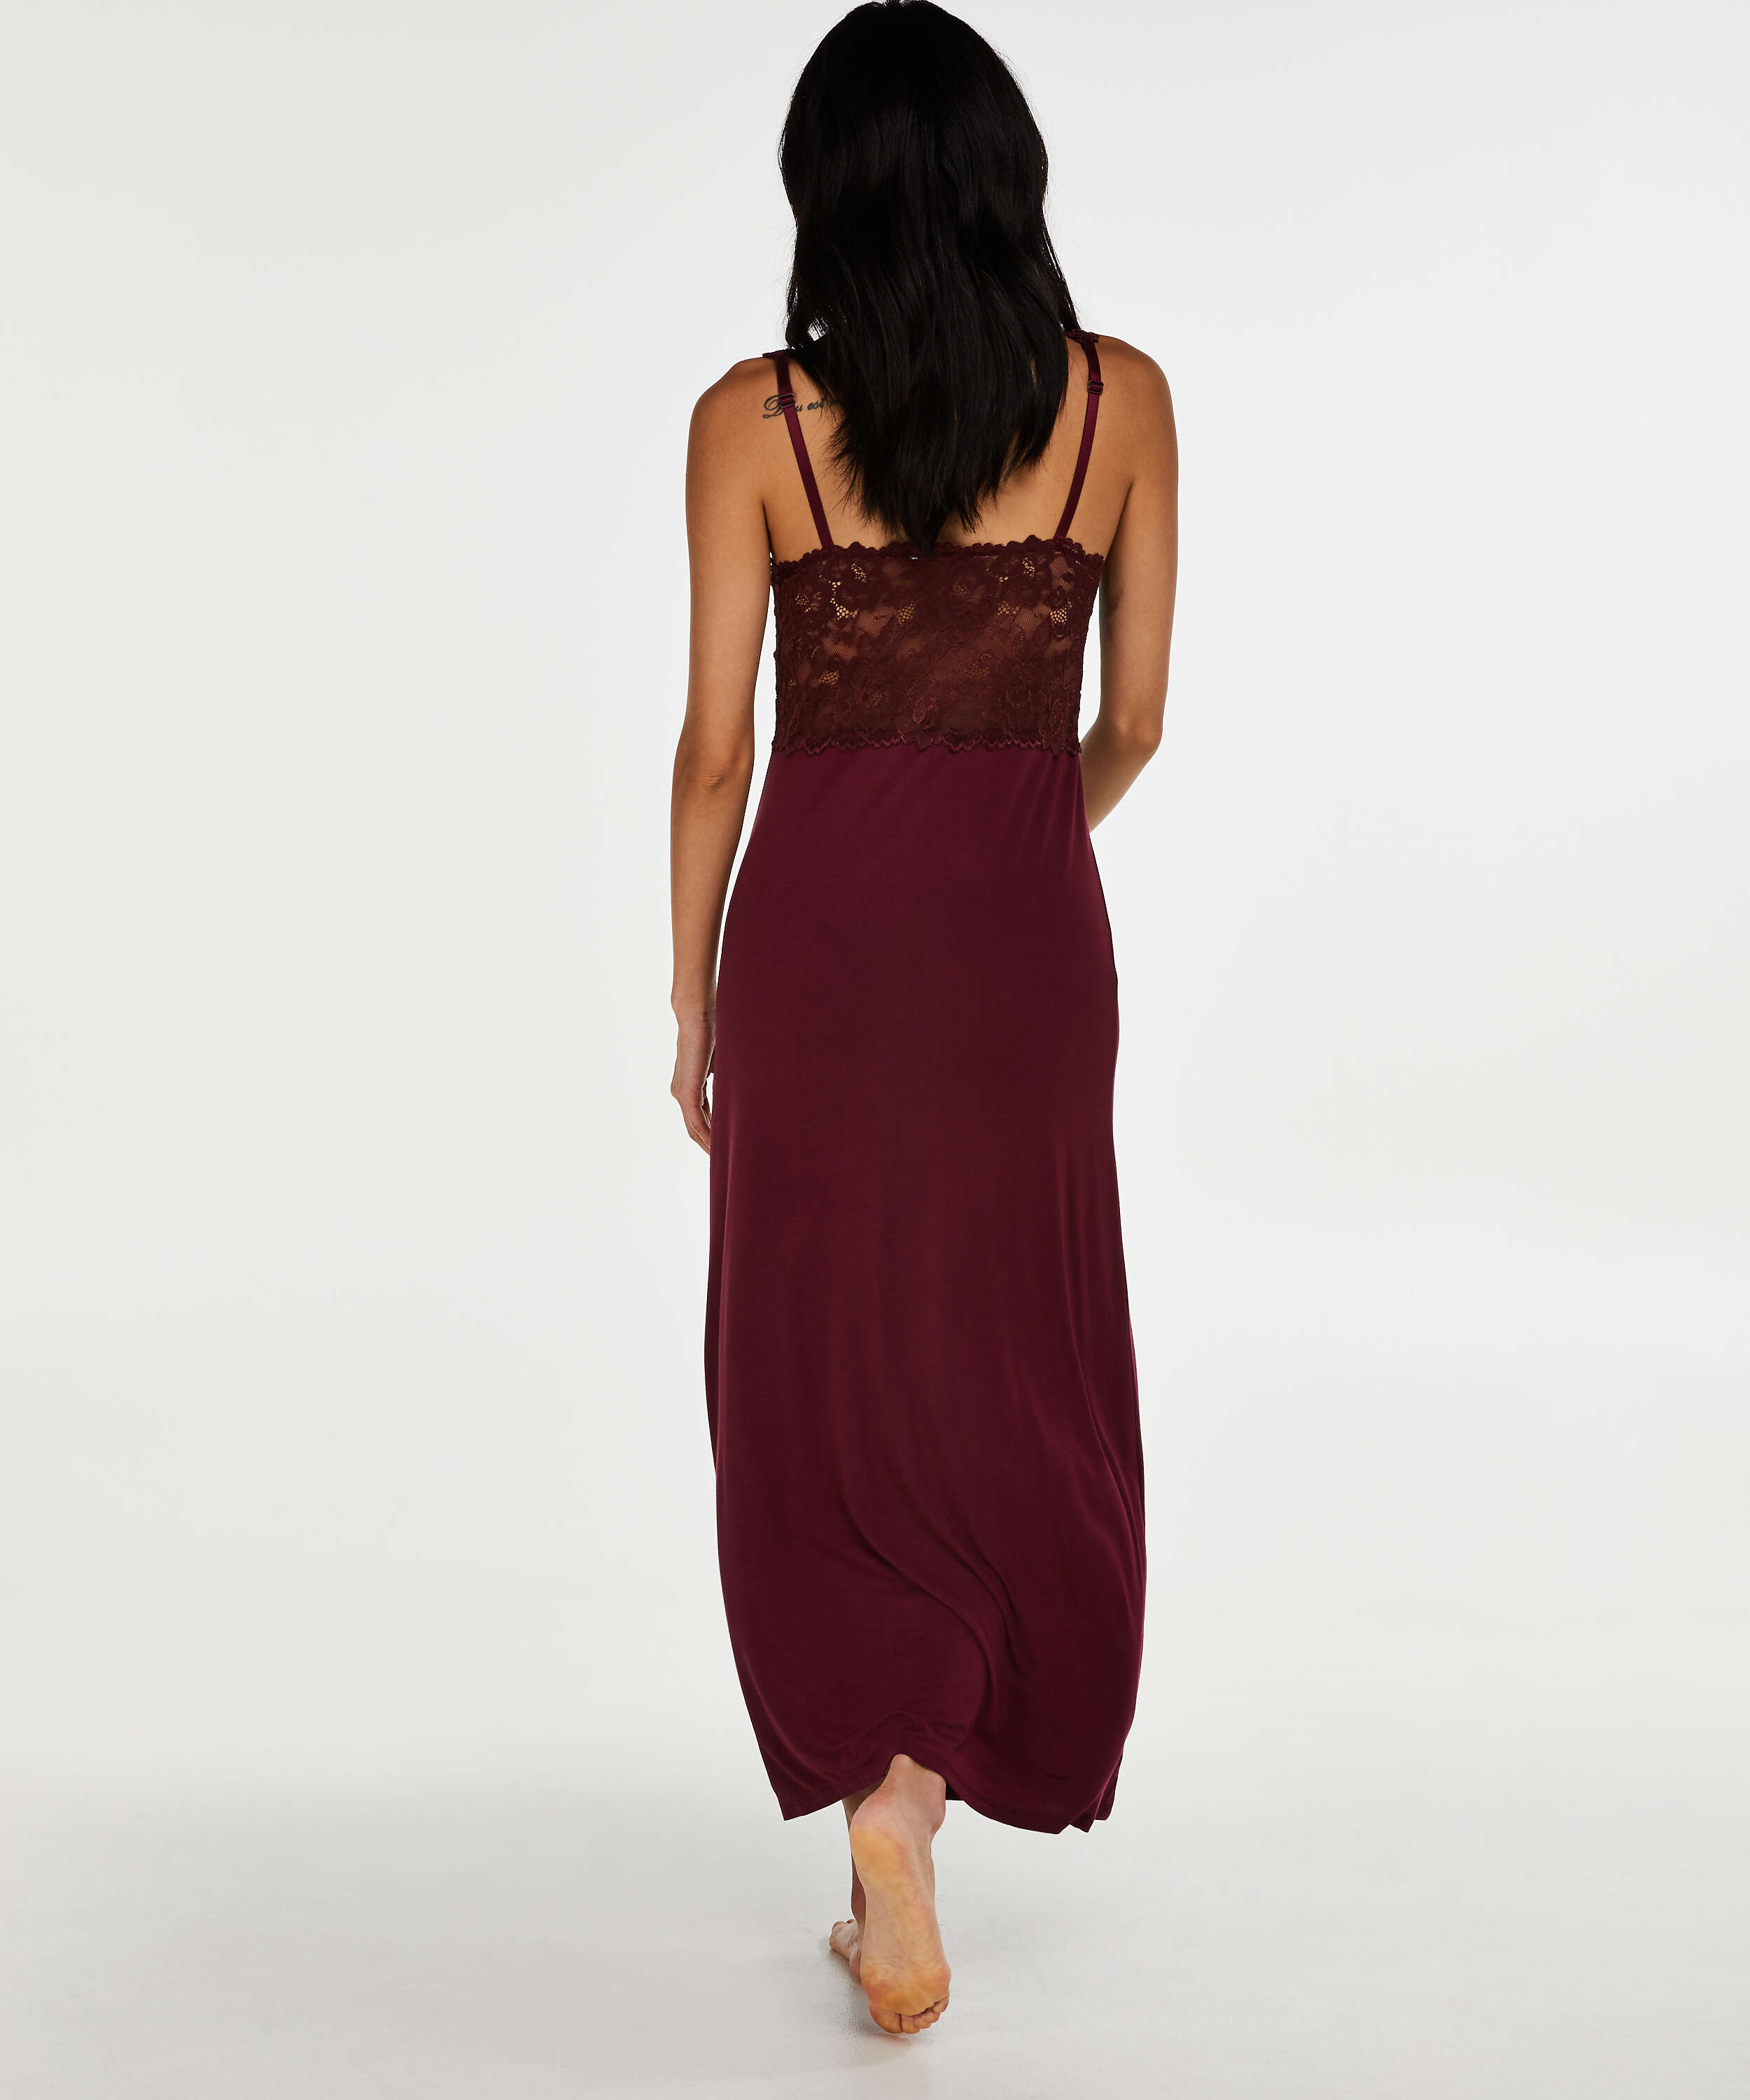 Long slip dress Modal lace, Red, main